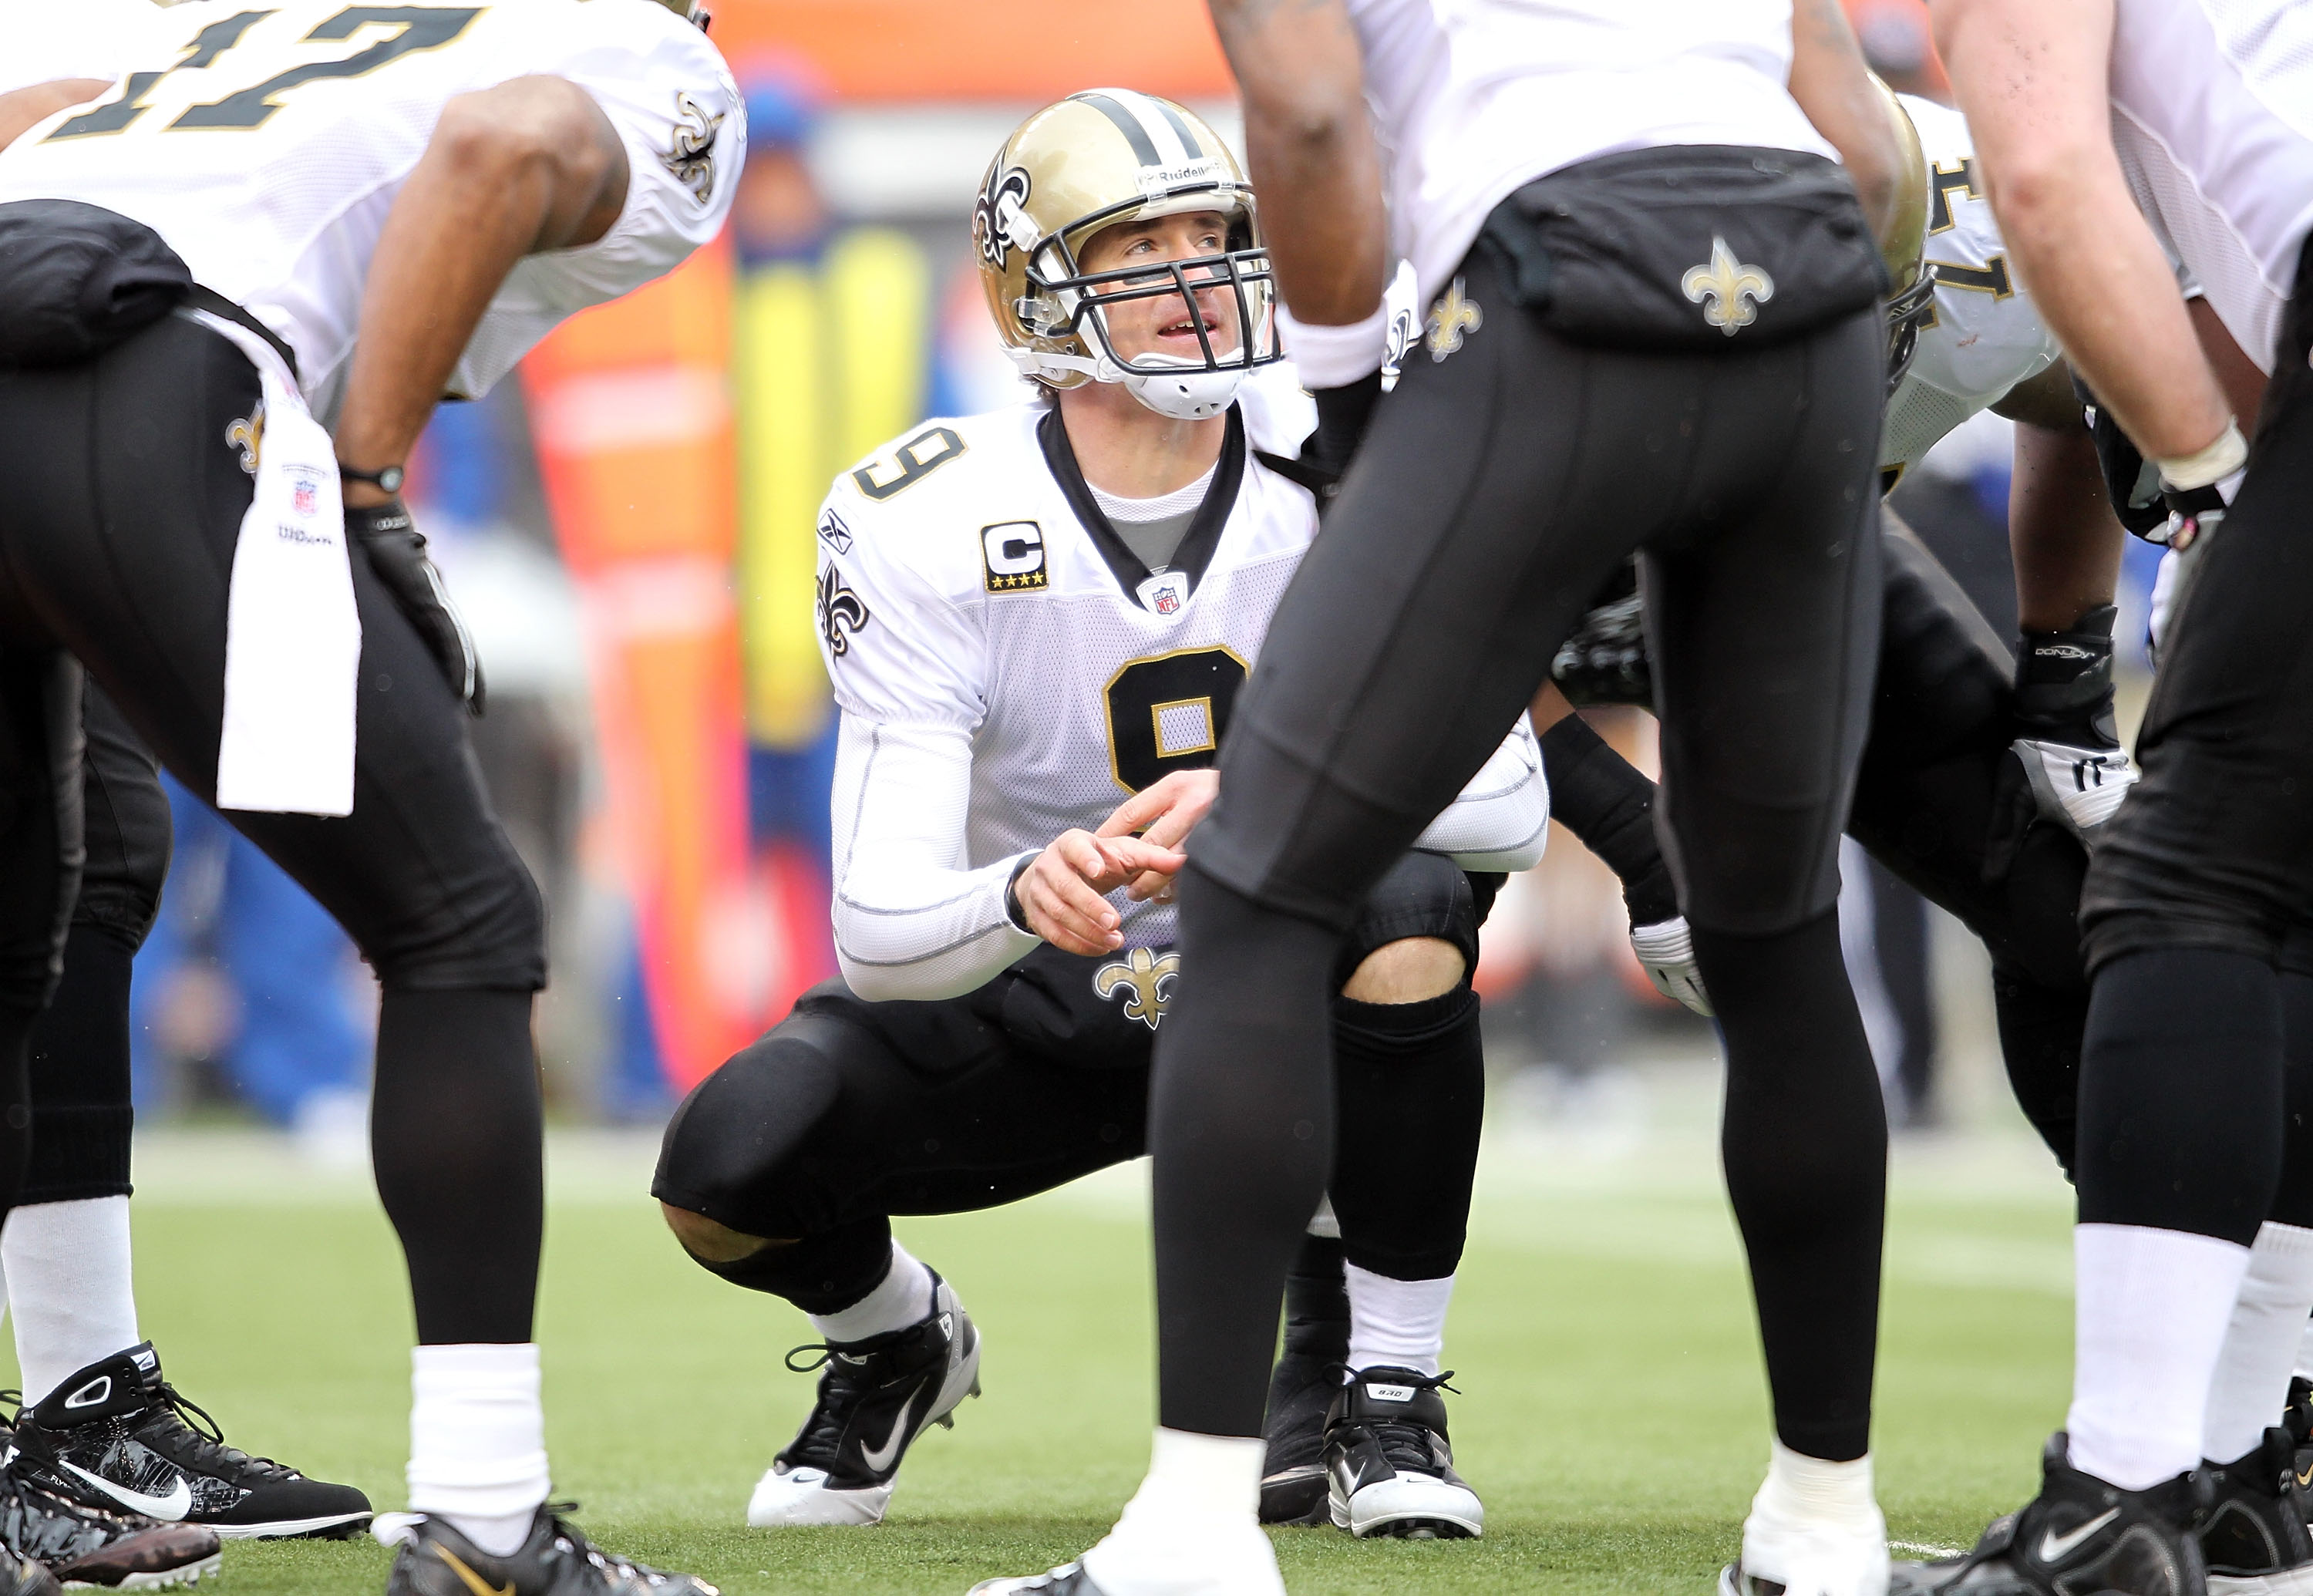 CINCINNATI, OH - DECEMBER 05:  Dree Brees #9 of the New Orleans Saints gives instructions to his team during the NFL game against the Cincinnati Bengals at Paul Brown Stadium on December 5, 2010 in Cincinnati, Ohio.  The Saints won 34-30.  (Photo by Andy